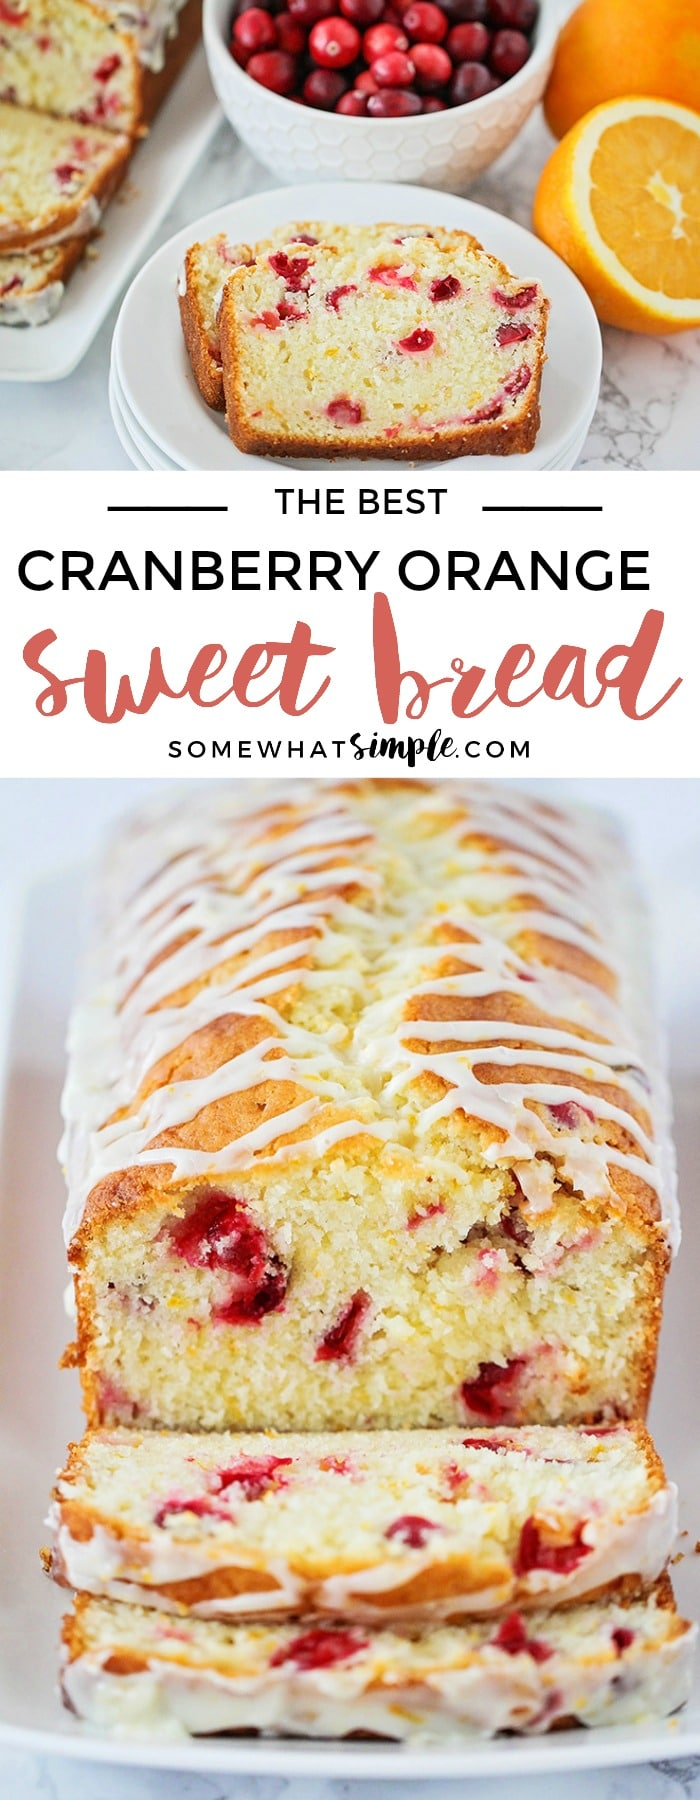 This delicious cranberry orange sweet bread recipe is so easy to make and perfect for parties or gifting! It's tender and sweet and loaded with cranberries! #bread #sweetbread #neighborsgift #yum #bread #carblover #cranberry #orange